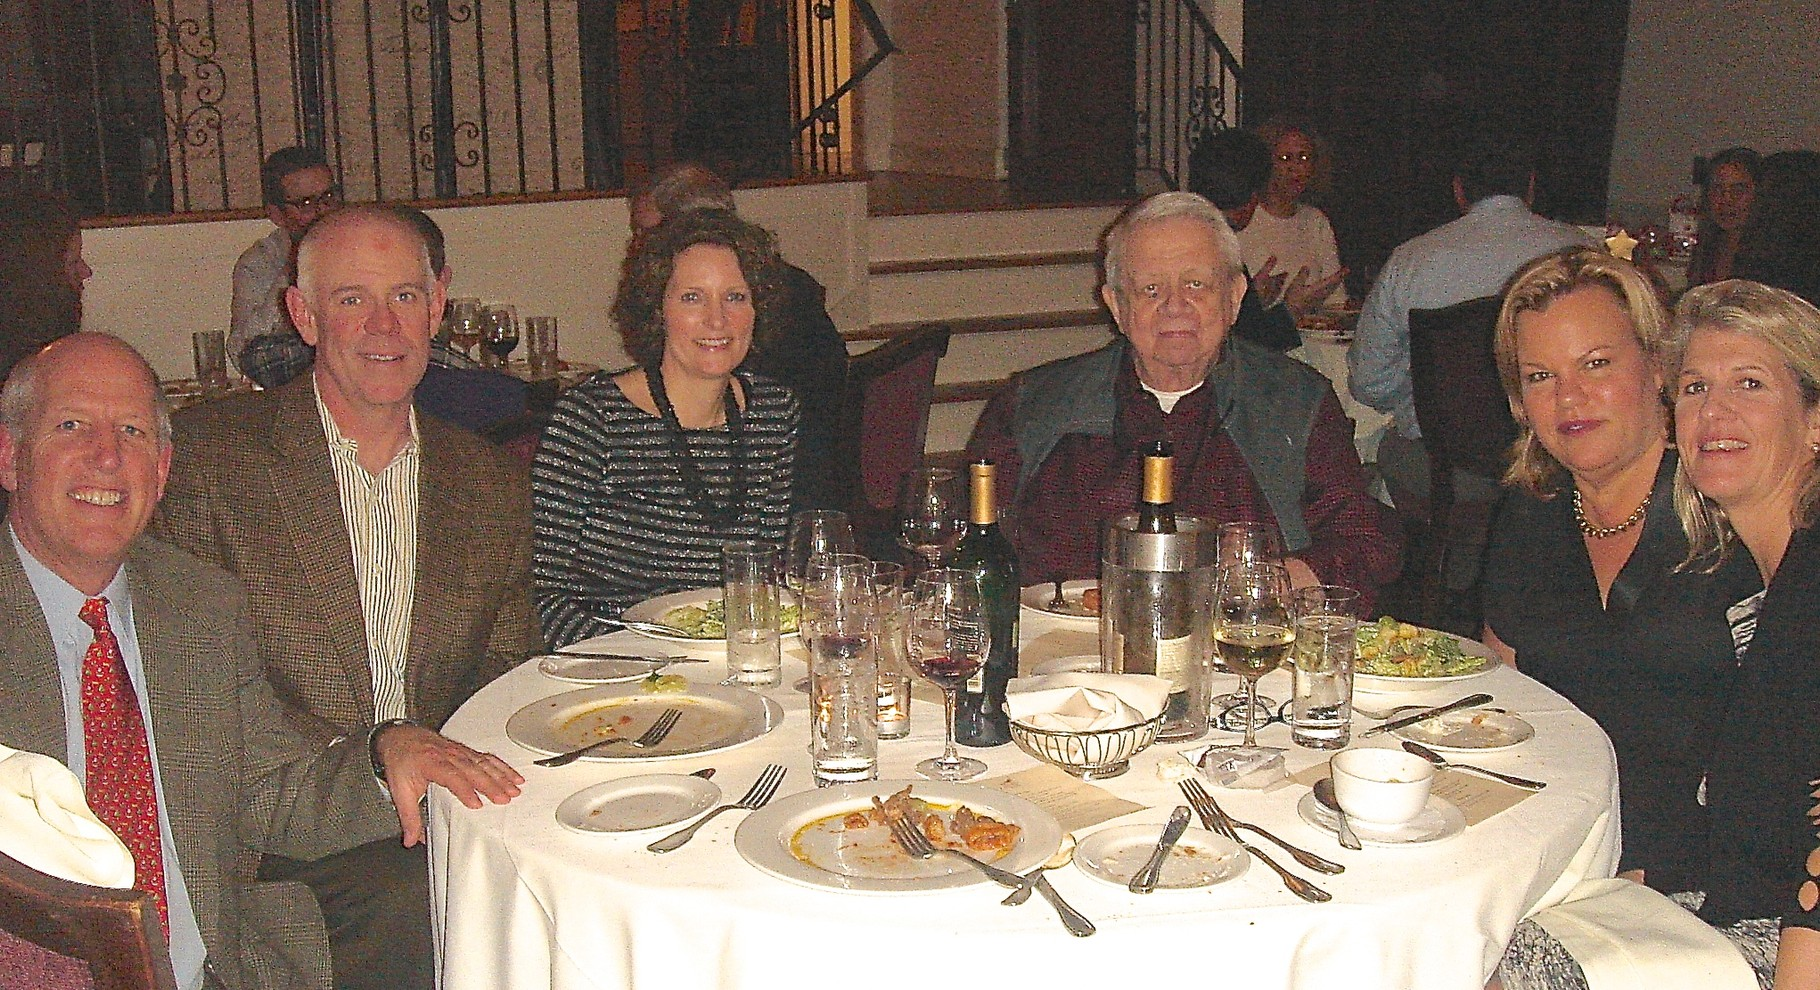 Scott Gaulocher, Colin Jr, Lisa, Colin Sr., Celeste, & Scott's wife Ann